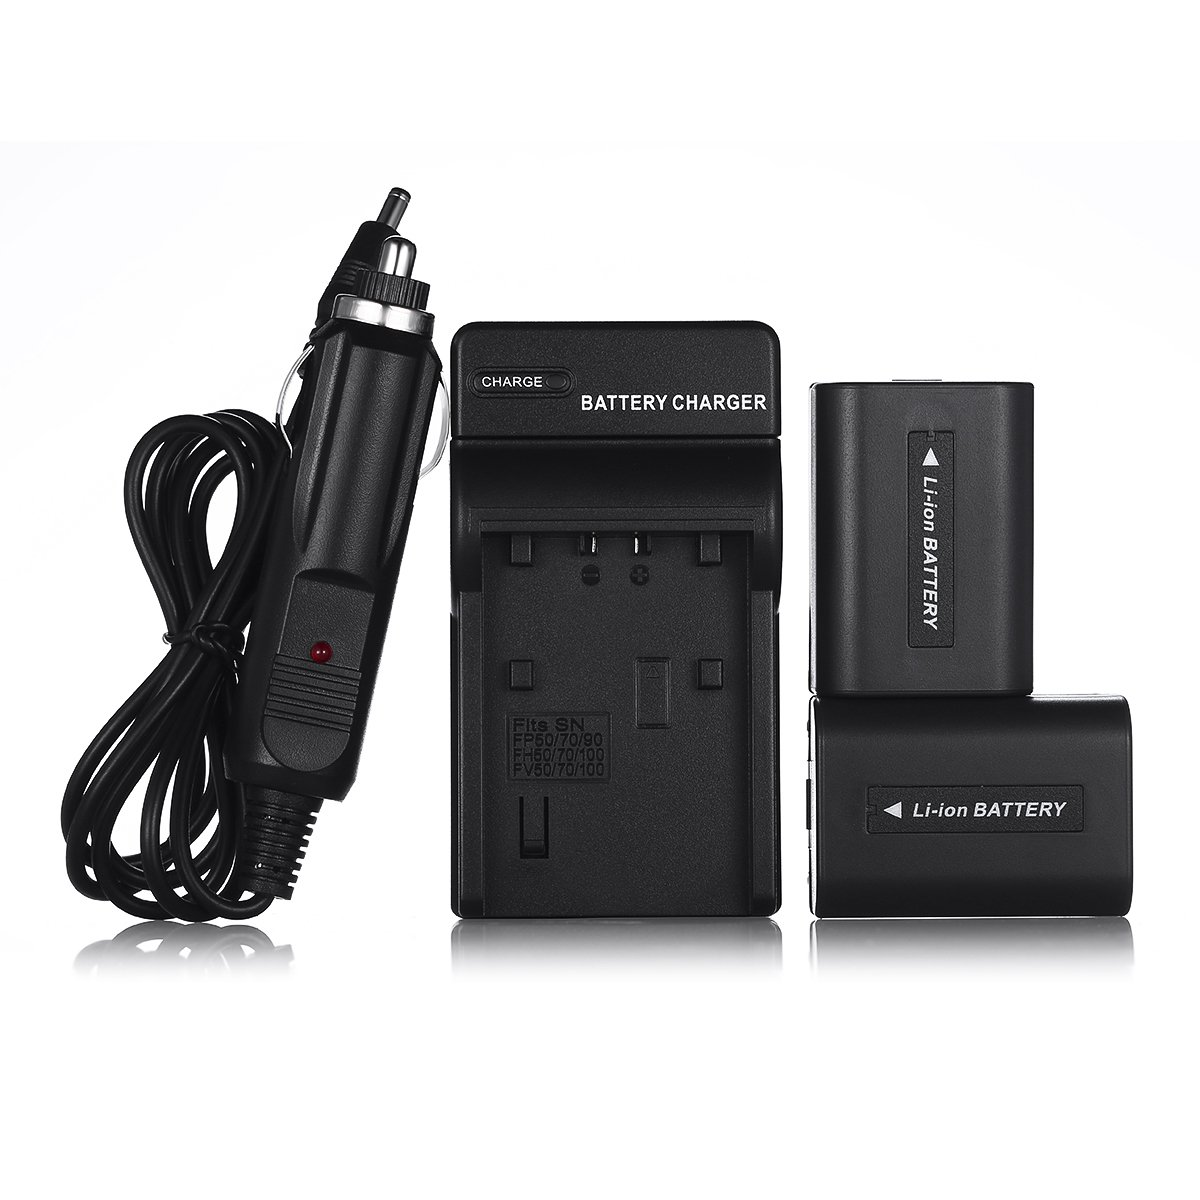 Powerextra 2 Pcs Replacement Sony NP-FH50 Battery and Charger Compatible With Sony Alpha DSLR A230, DSLR A290, DSLR A330, DSLR A380, DSLR A390, Cyber-shot DSC-HX1, DSC-HX100V, DSC-HX200V, HDR-TG5V